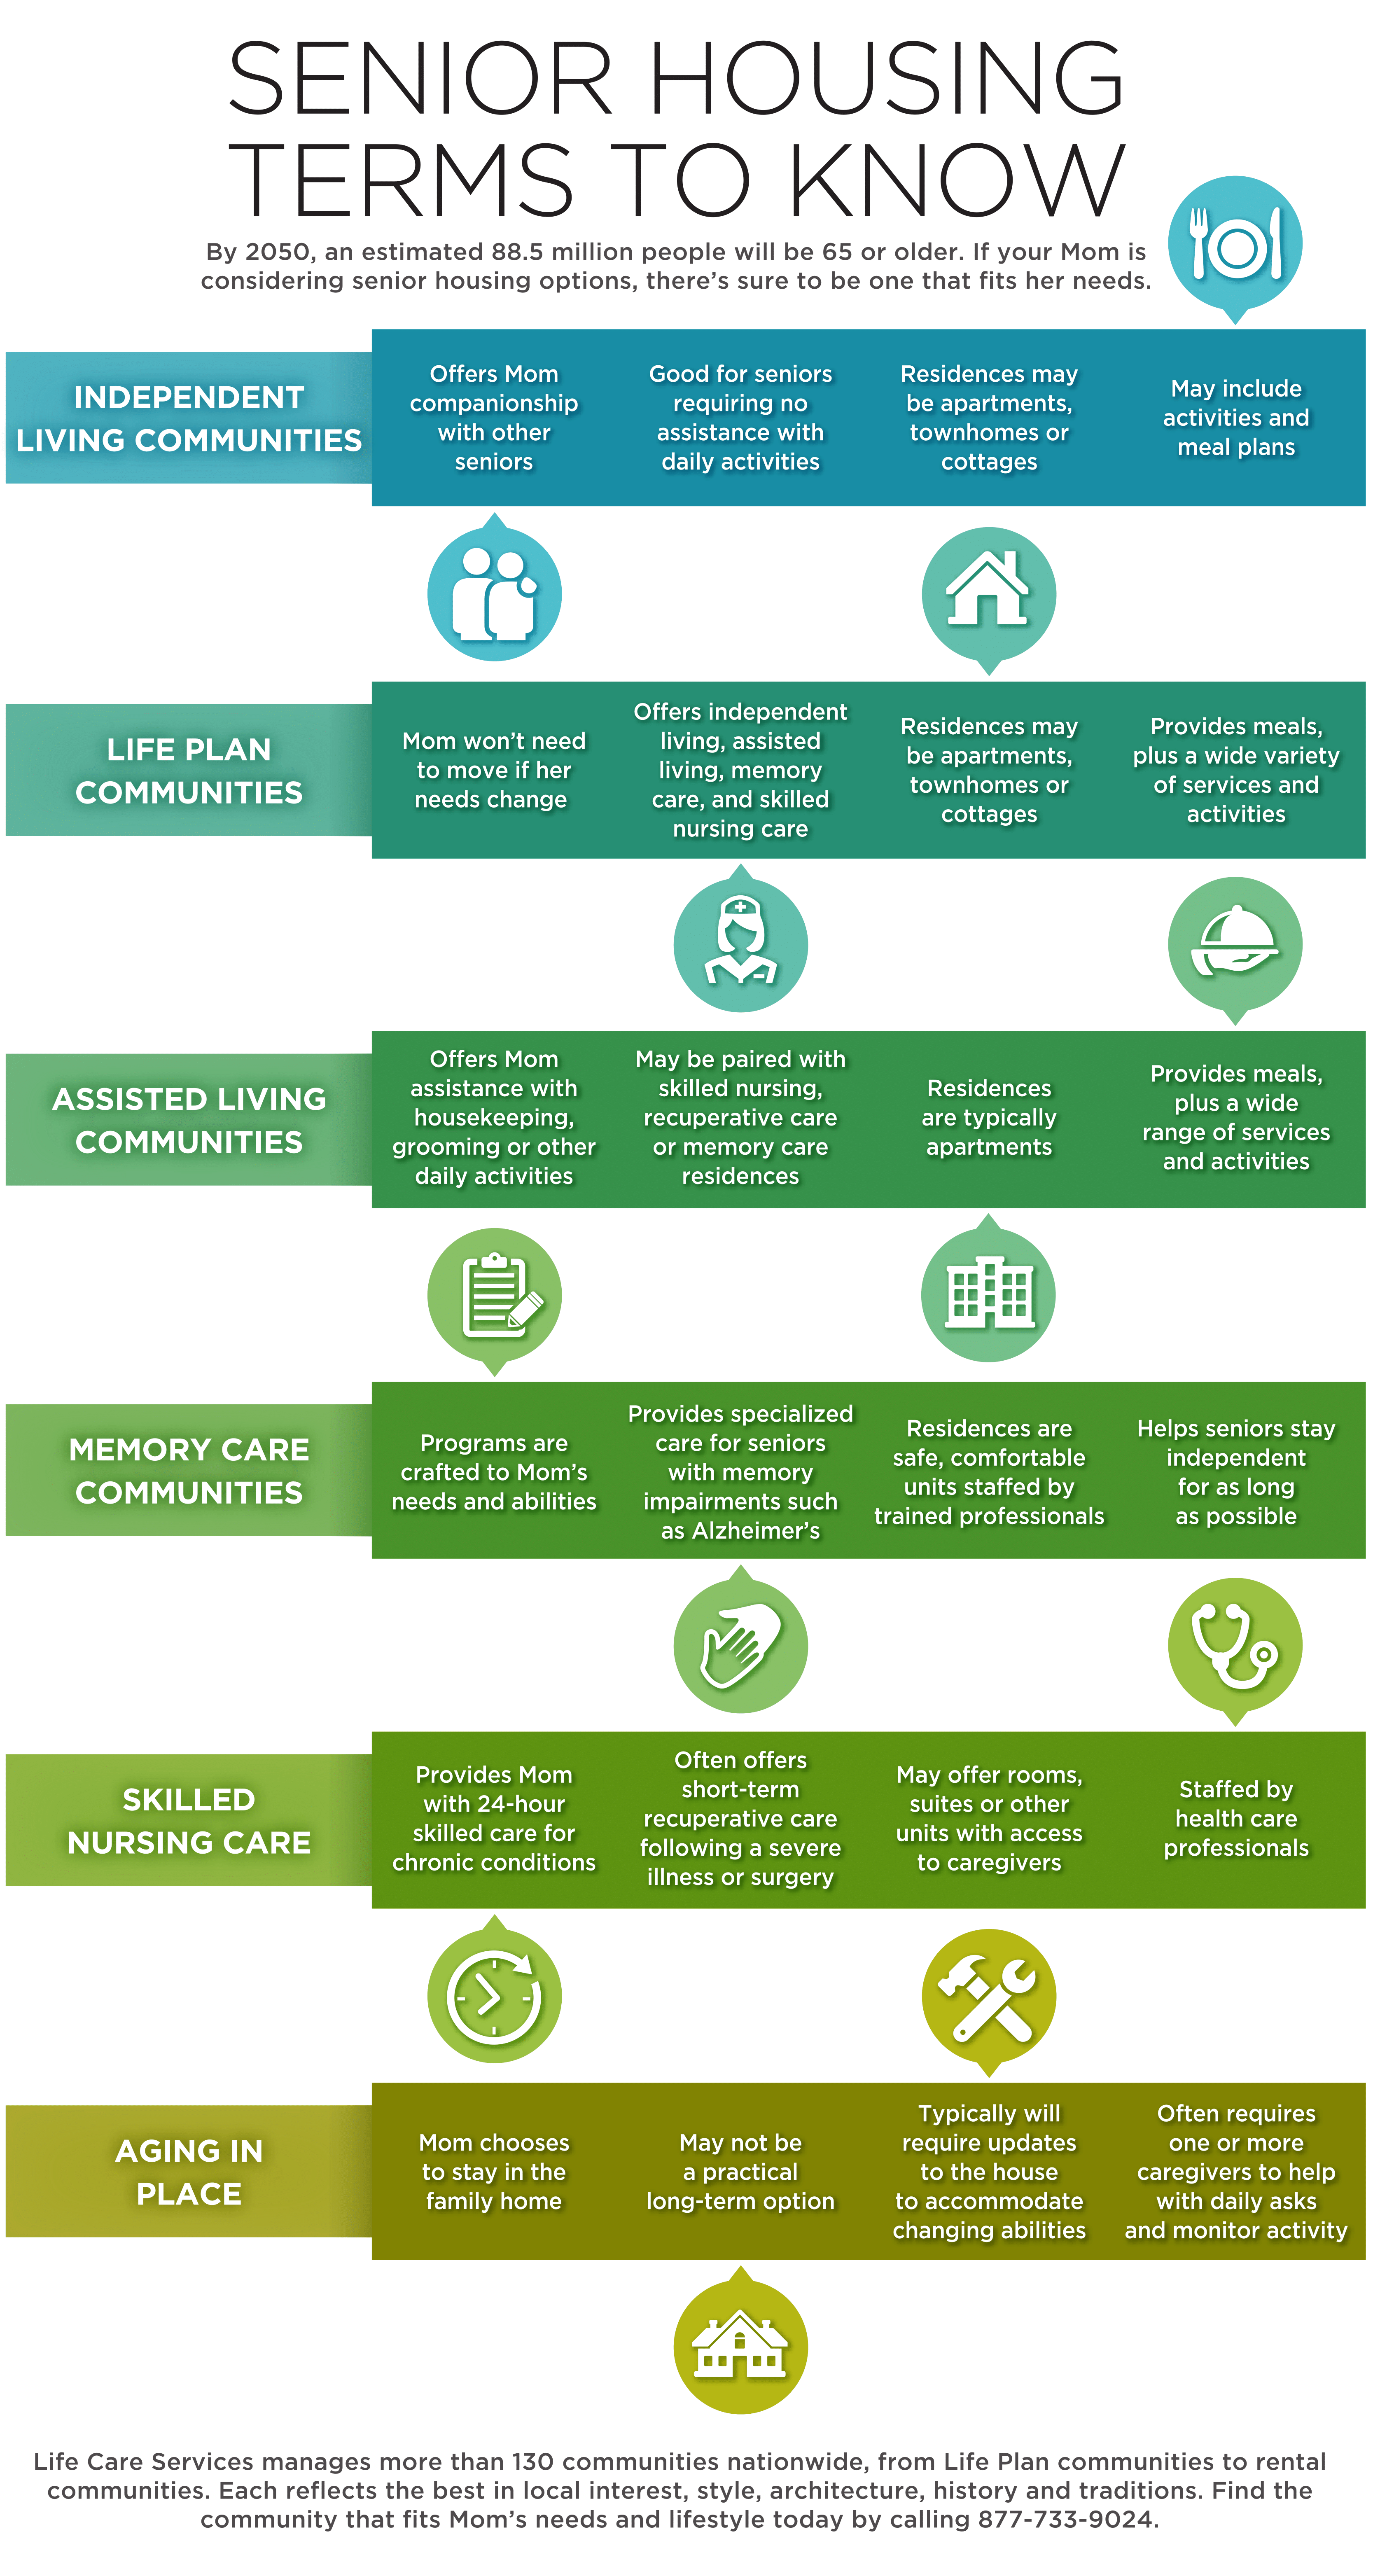 infographic showing common senior housing terms you should know